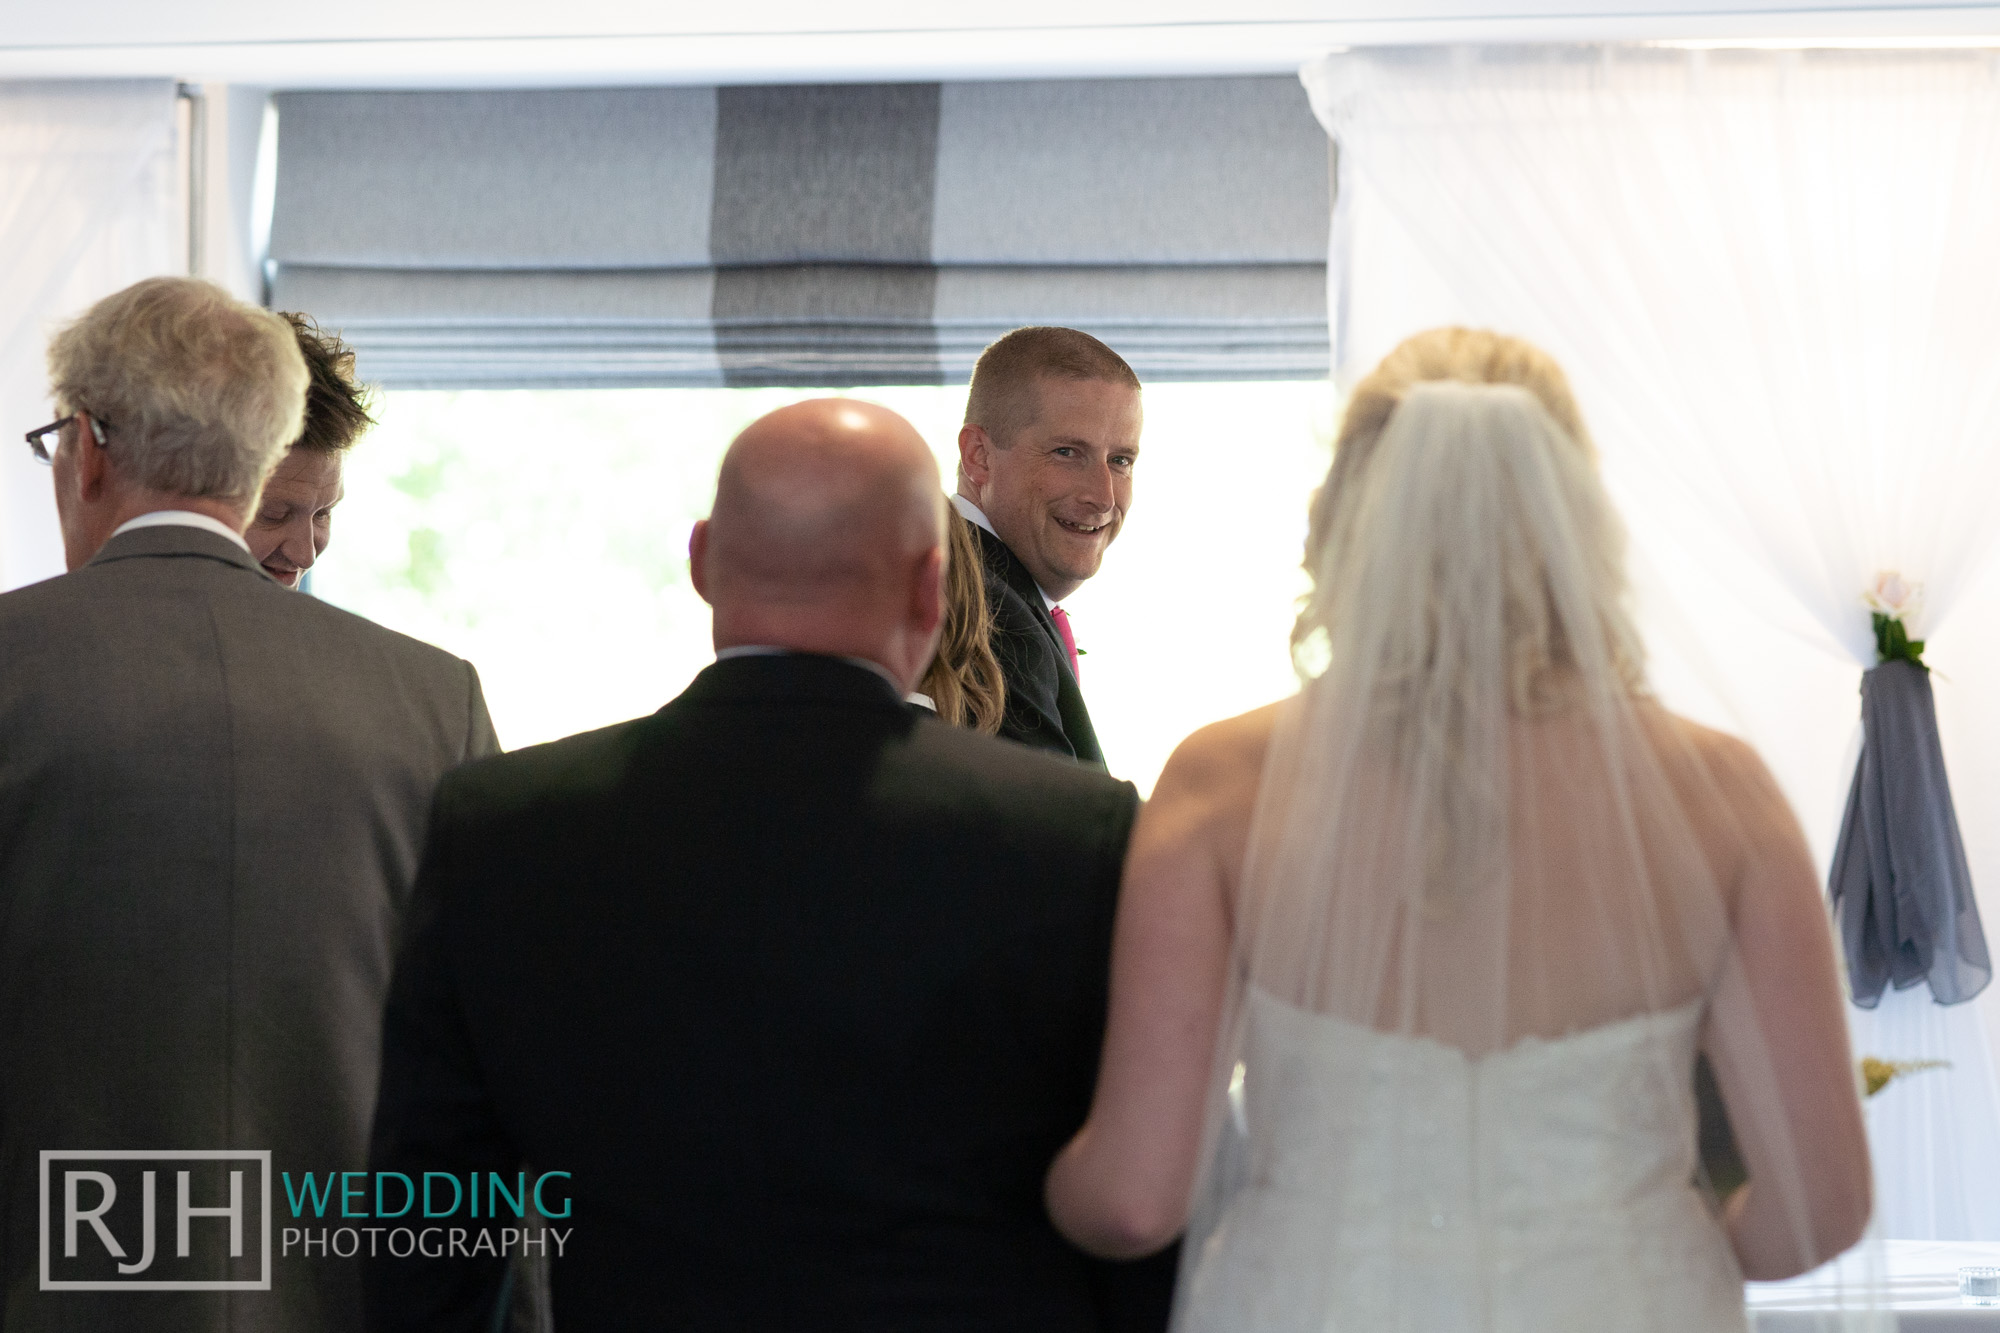 Aston Hall Wedding Photography - Whitby Wedding Preview_020_DSB09463.jpg